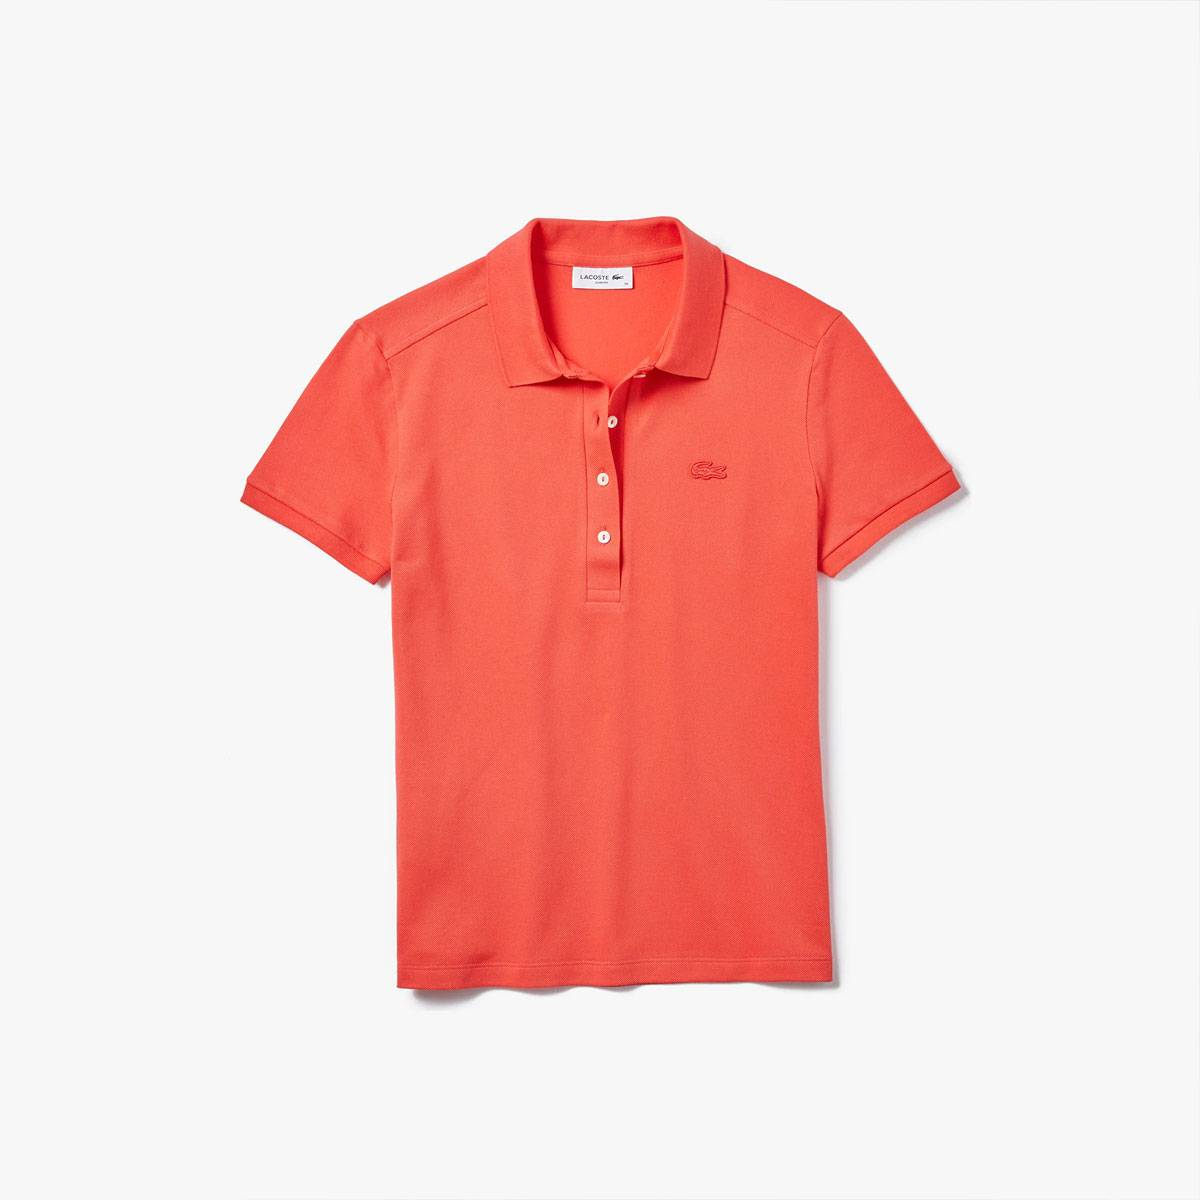 Lacoste Polo Donna in Cotone Stretch Rosso 4BY - 42 - Donna